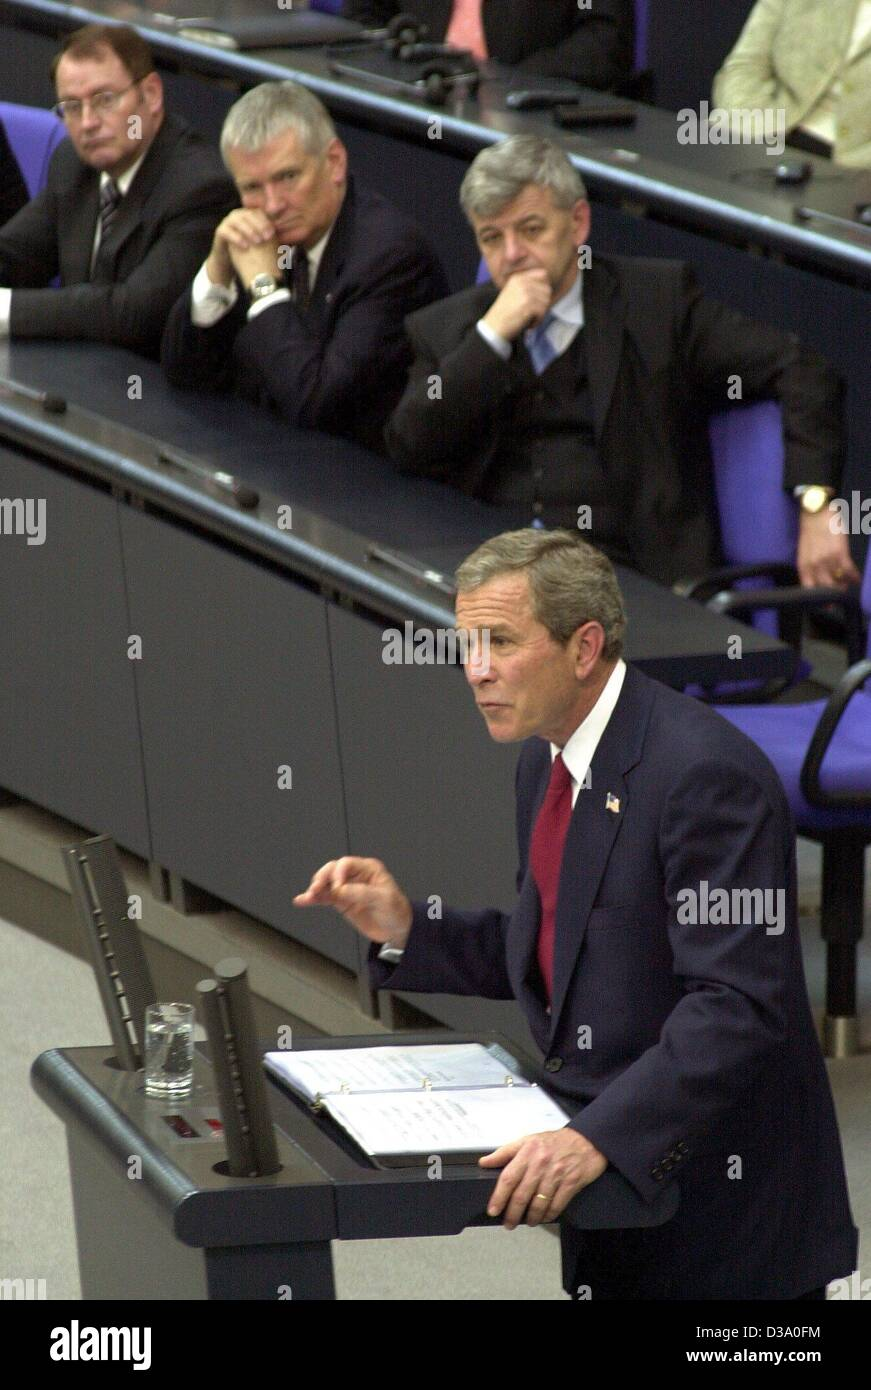 (dpa) - US President George W. Bush delivers his speech in German parliament, the Bundestag in Berlin, while Foreign Minister Joschka Fischer (2nd from R) and Interior Minister Otto Schily (3rd from R) are listening, 23 May 2002. He called for a joint European appearance against the 'enemies of free Stock Photo